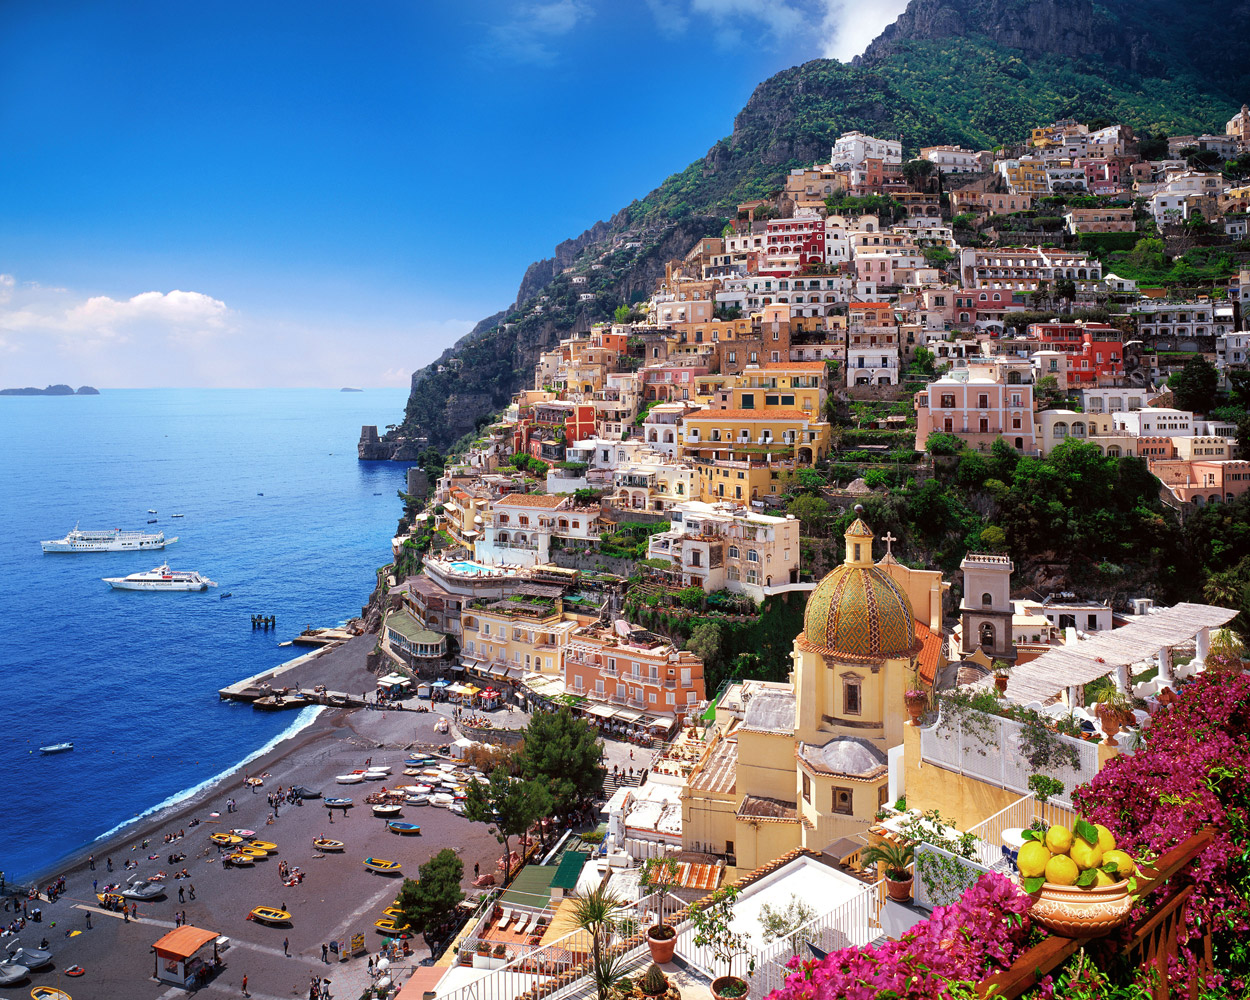 One Of The Most Colorful Towns In The World The Beautiful Coastal Village Of Manarola Italy Pics